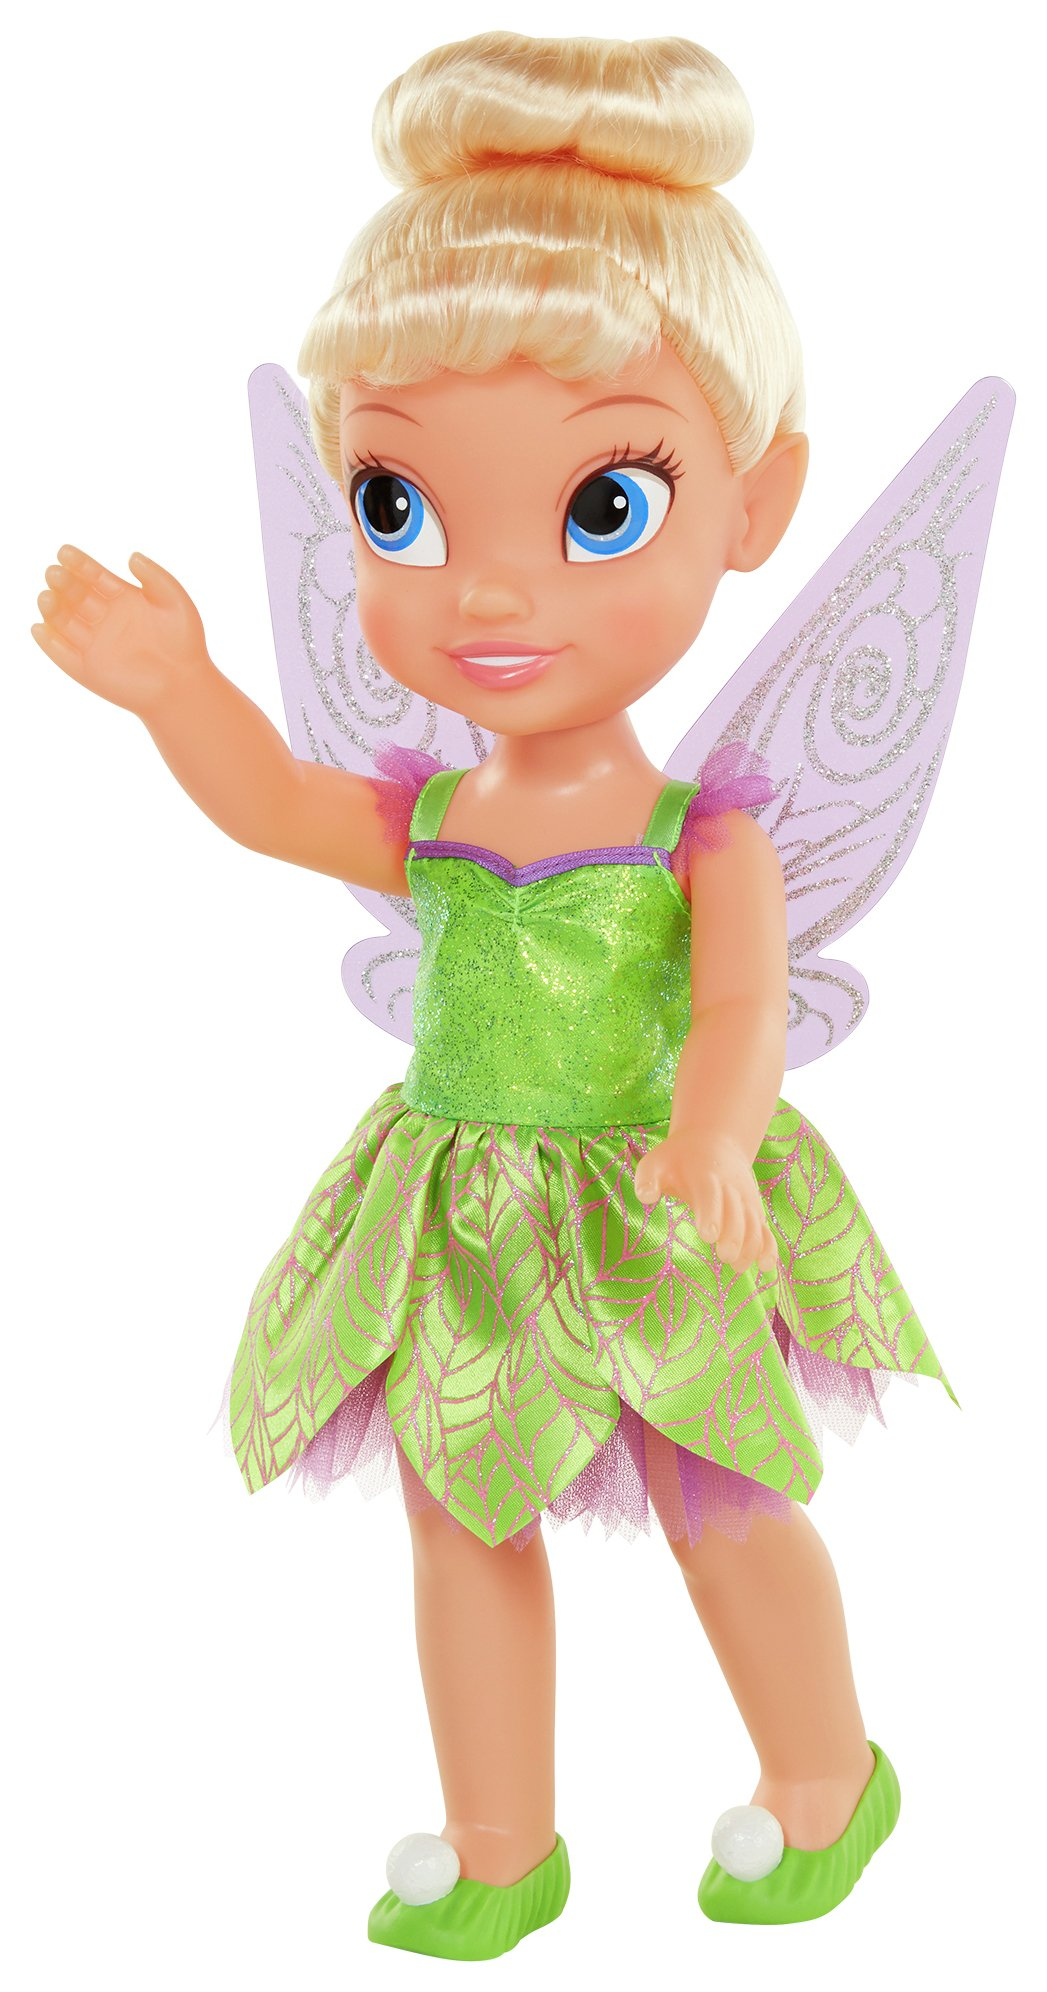 Image of Disney Fairies Tinker Bell Doll - Large